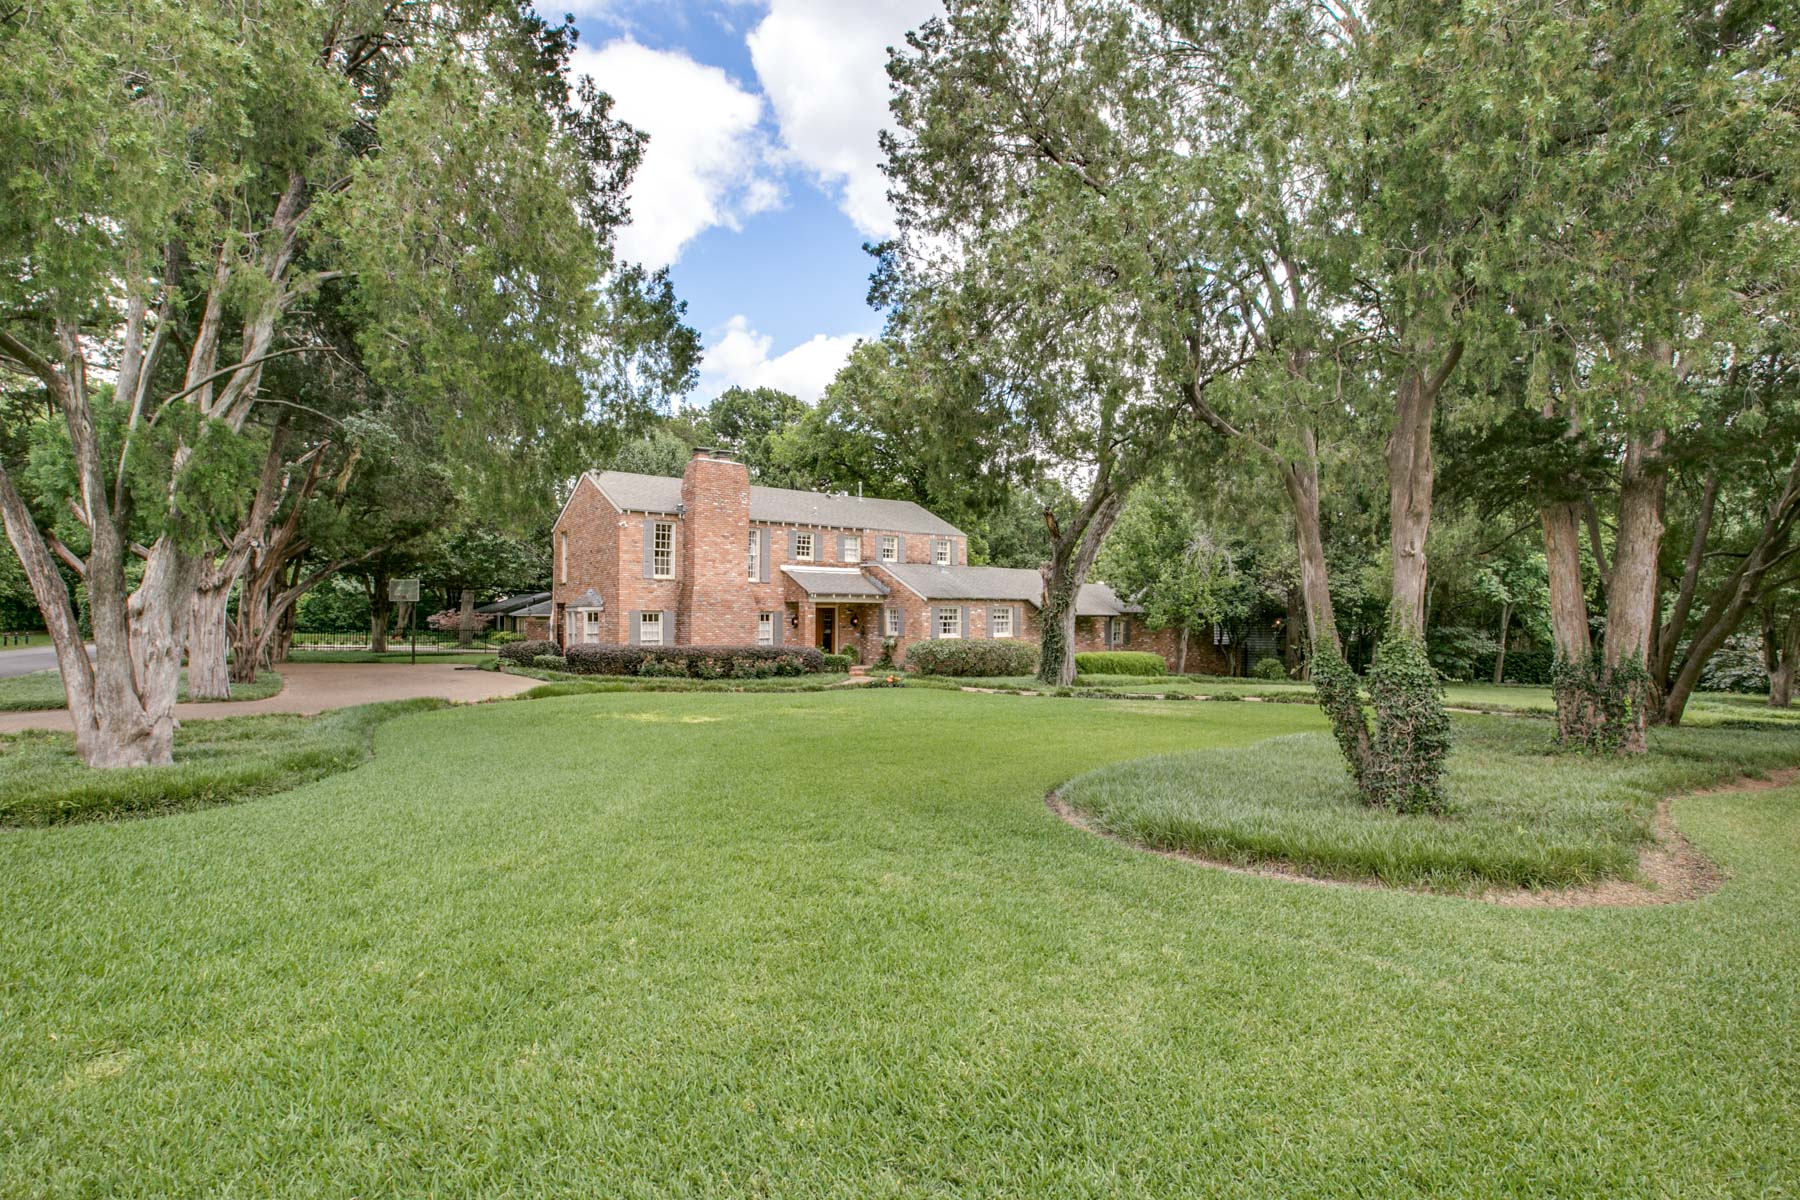 단독 가정 주택 용 매매 에 Classic English Home on Large Gorgeous Lot 9362 Hathaway St Dallas, 텍사스, 75220 미국